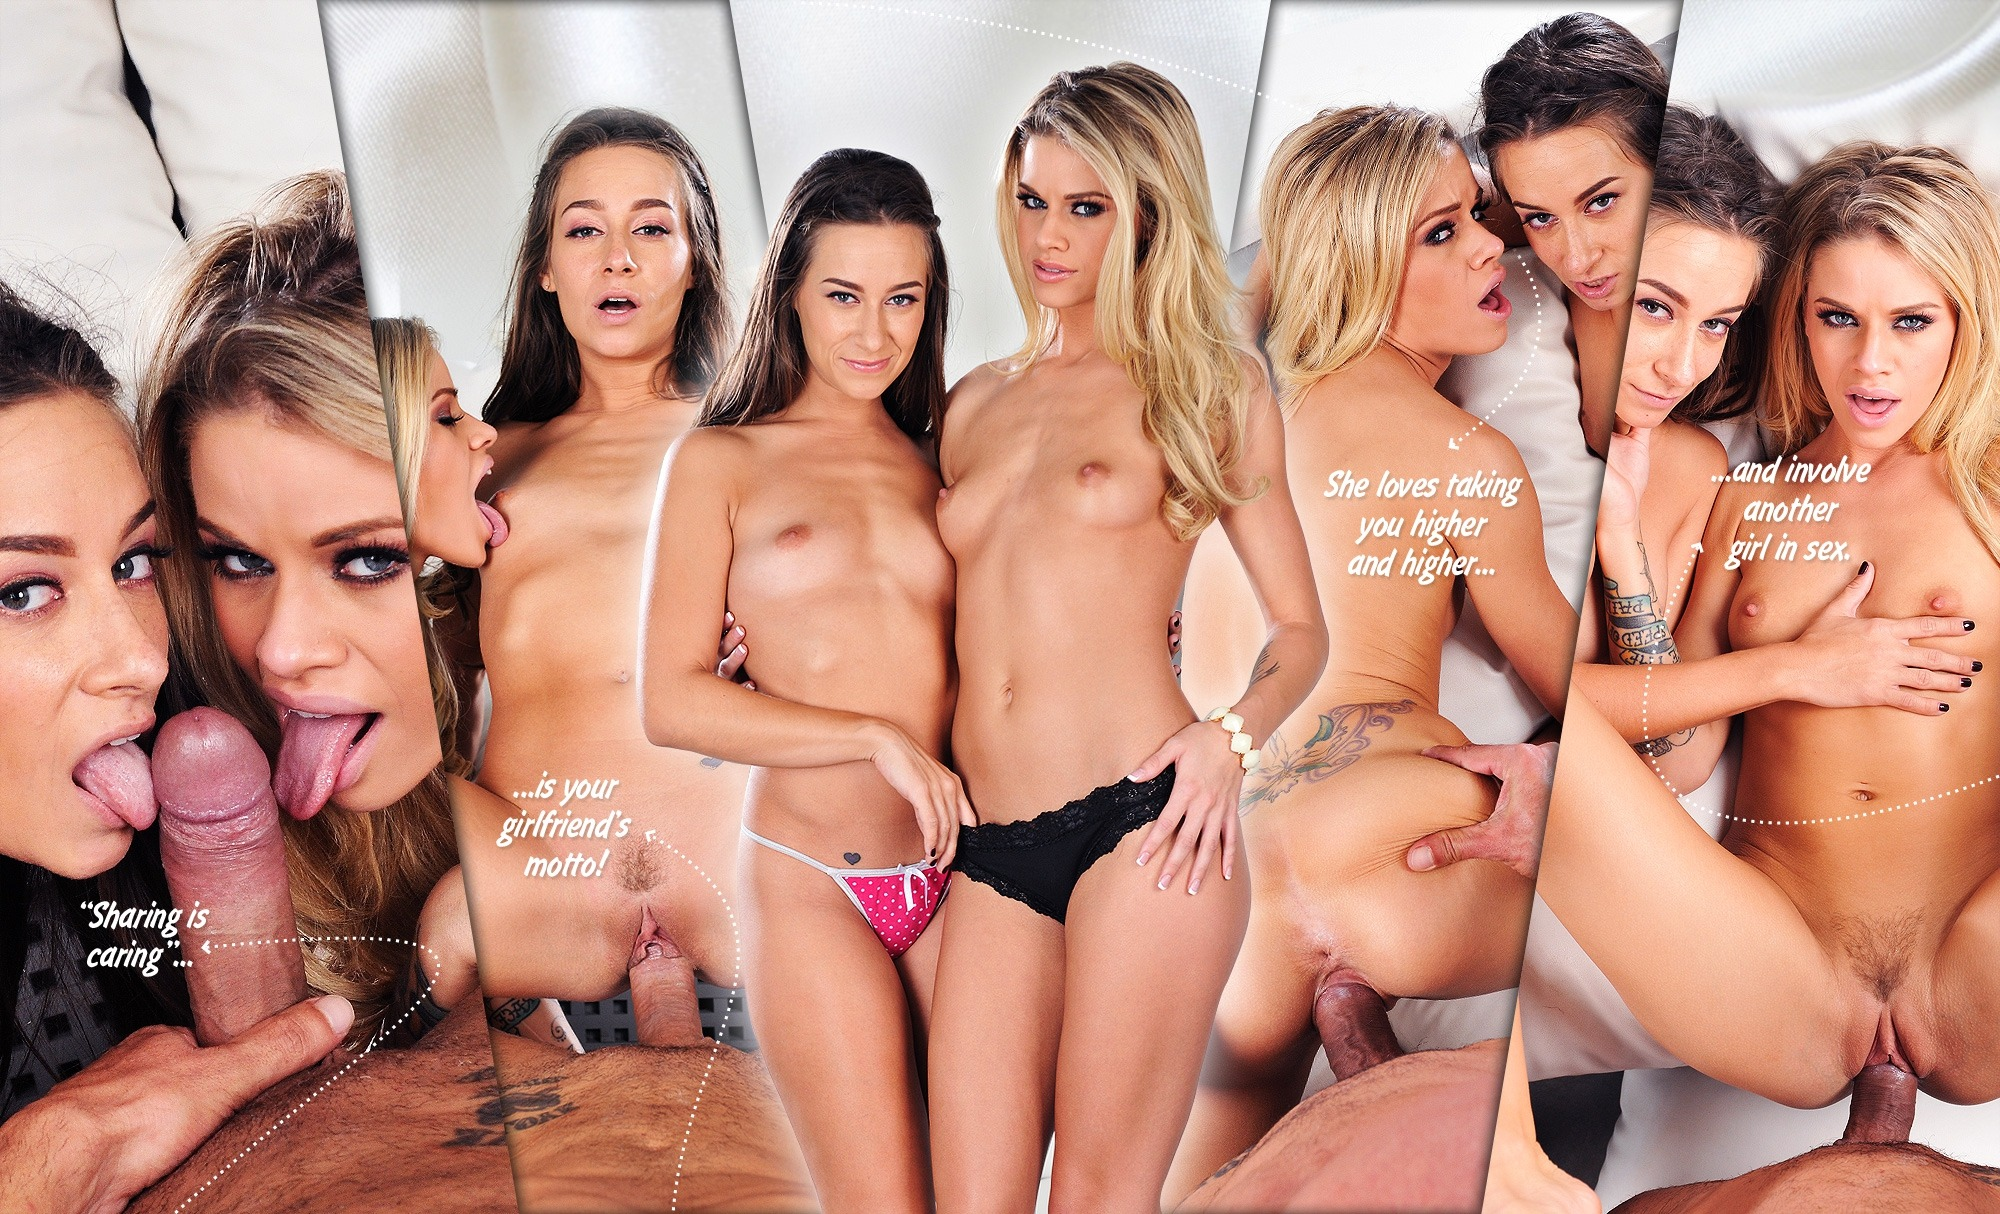 Lifeselector Show